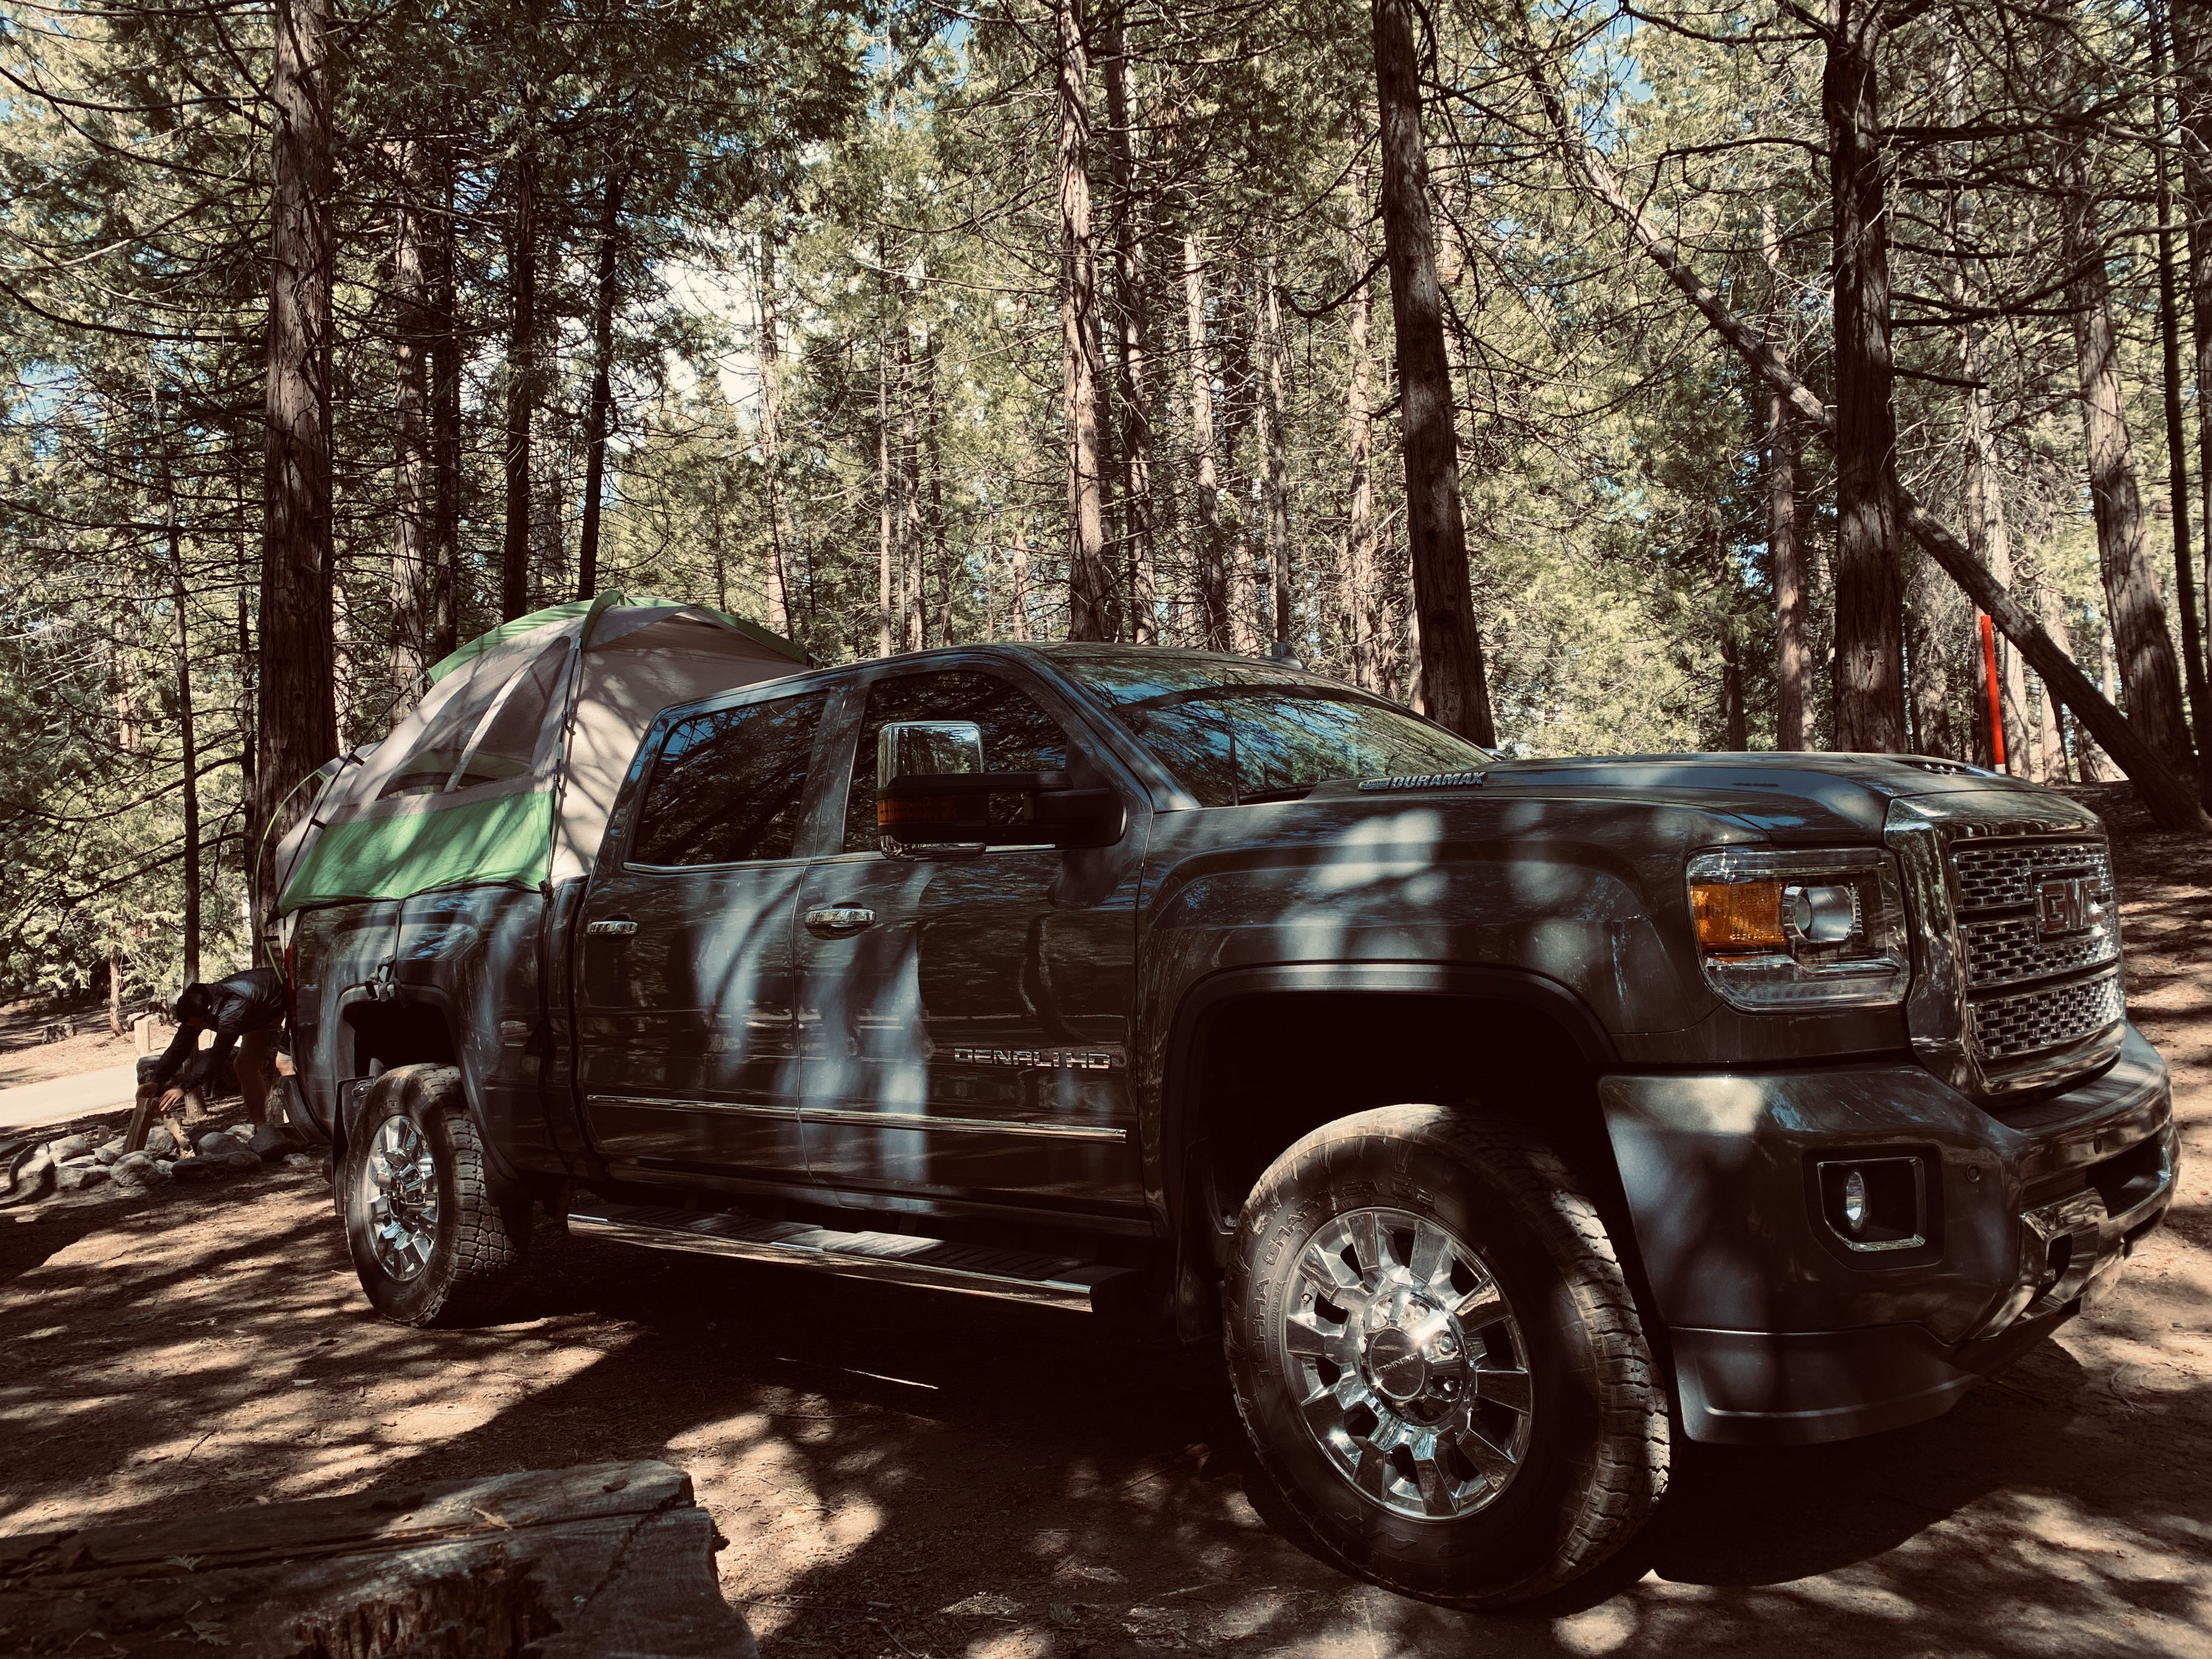 Gmc Denali Truck Tent Camping With Images Truck Tent Truck Tent Camping Denali Truck